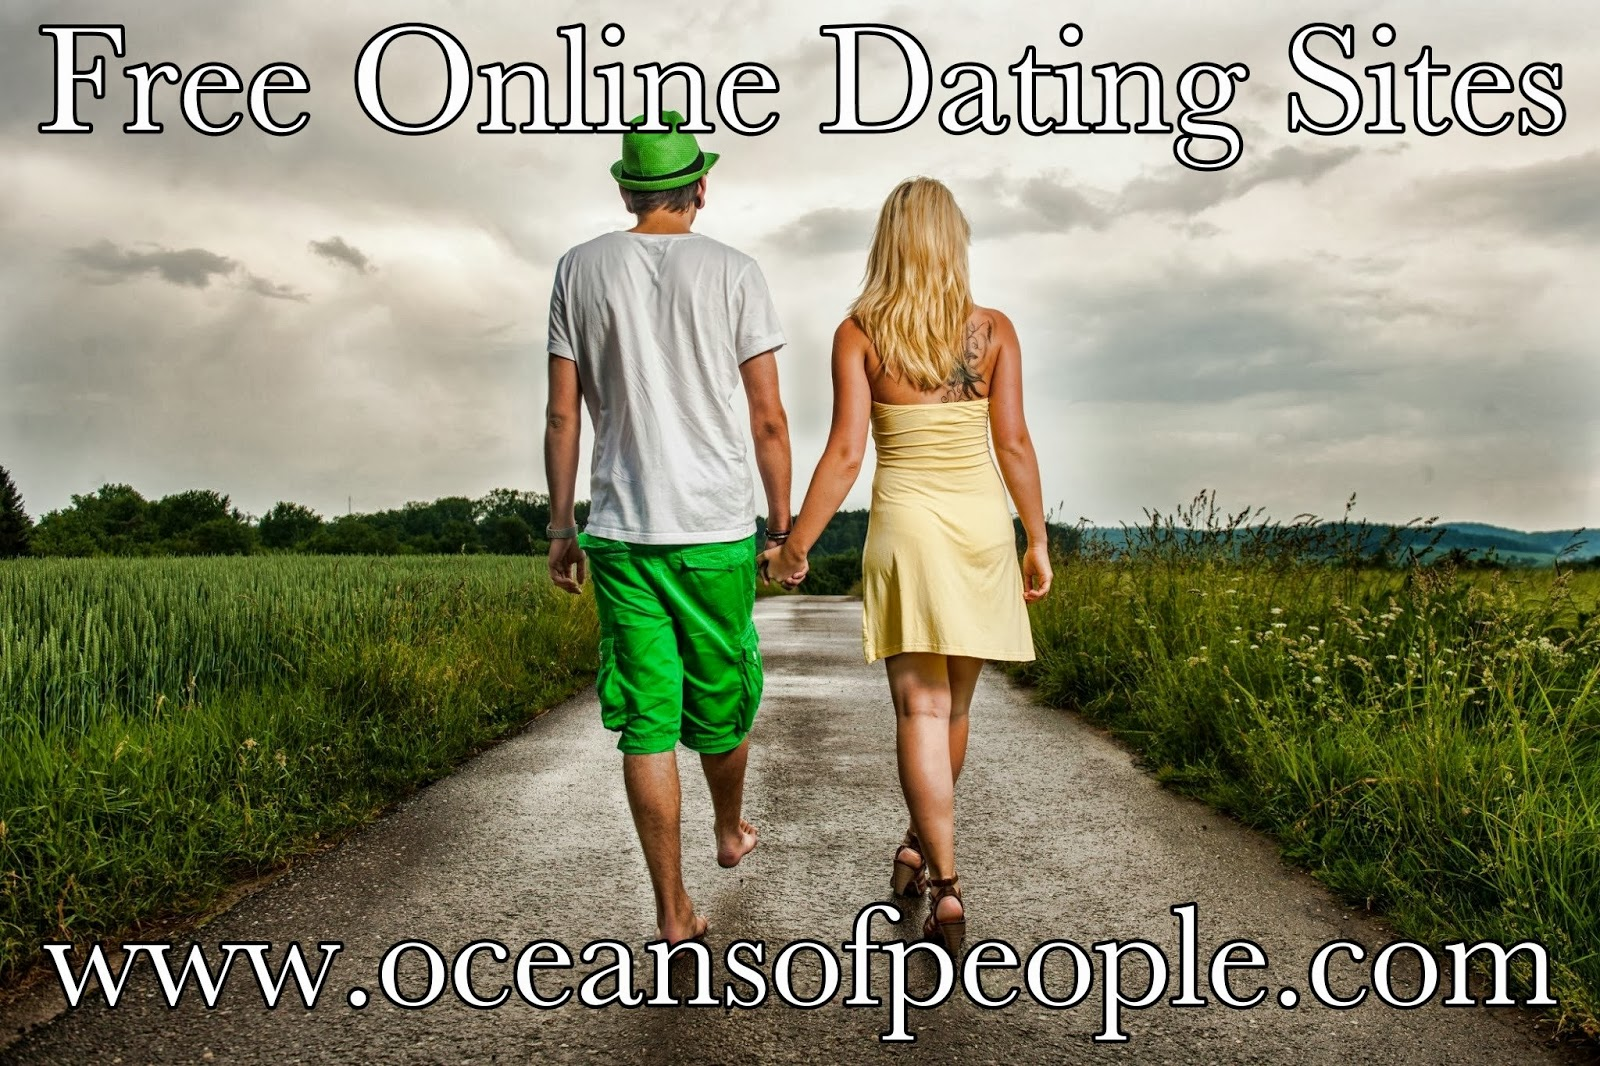 how to get out of a dating service contract: how to start a free online dating website